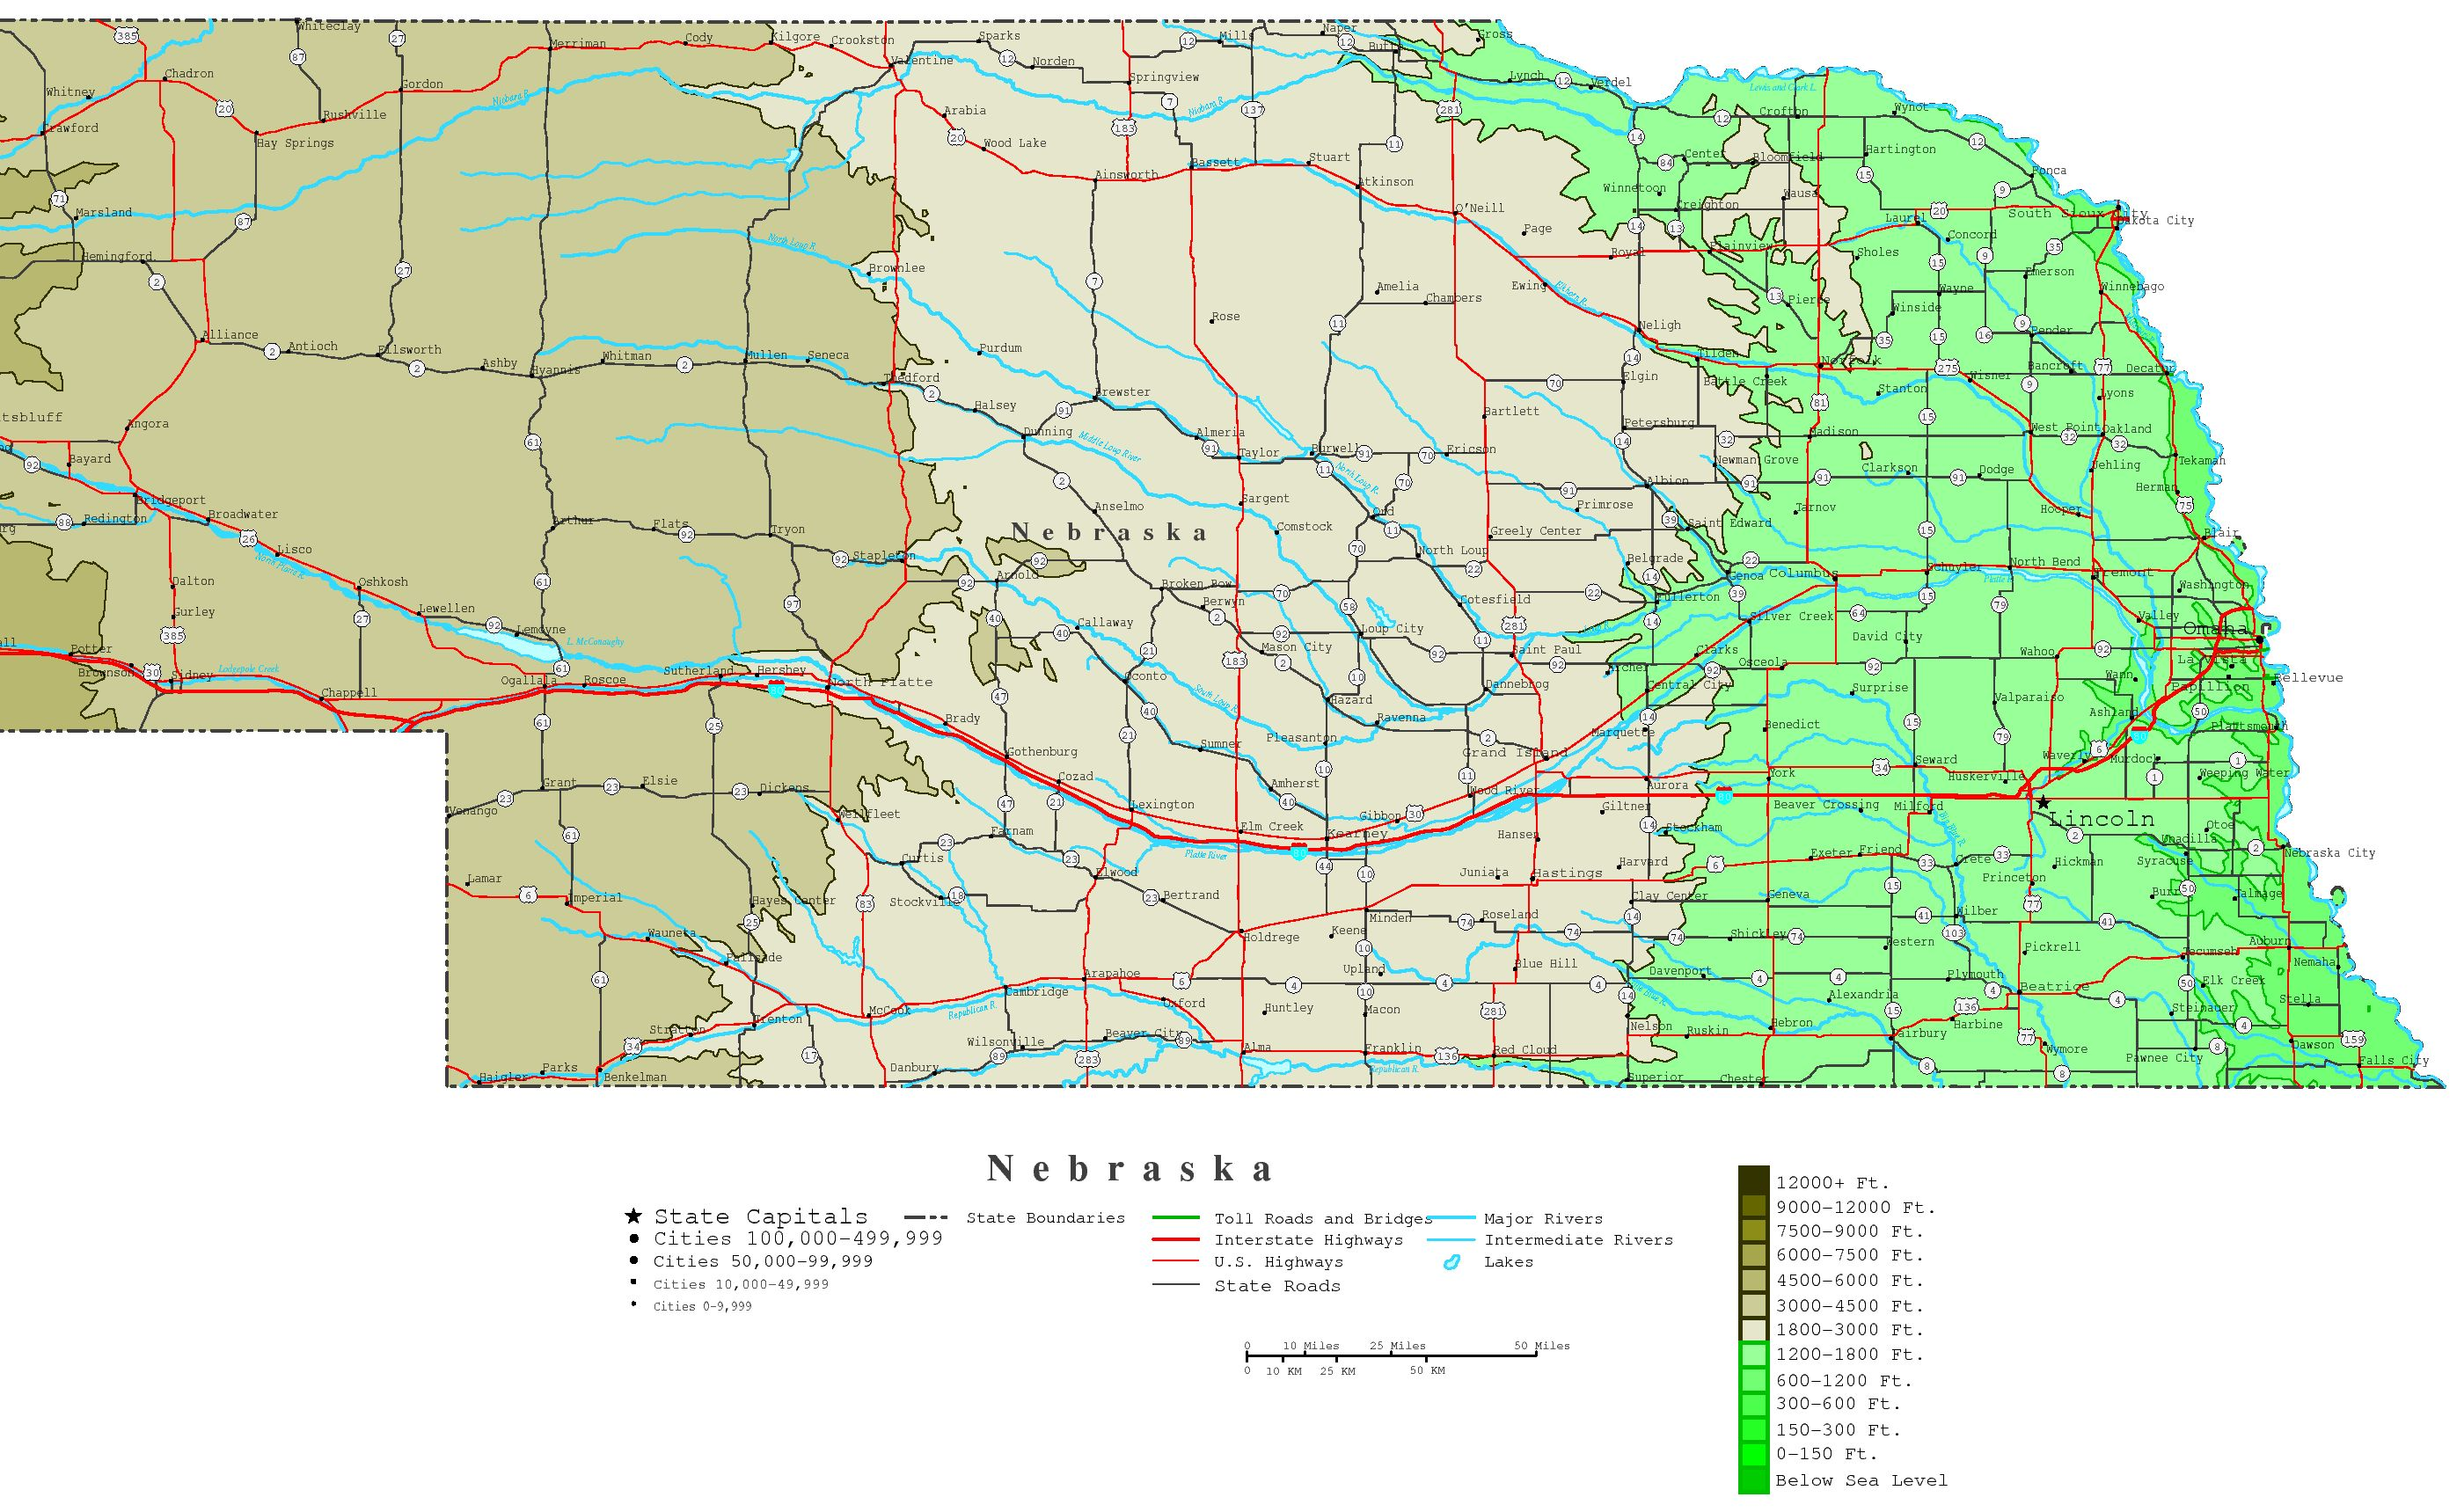 Nebraska Contour Map - Nebraska on us map